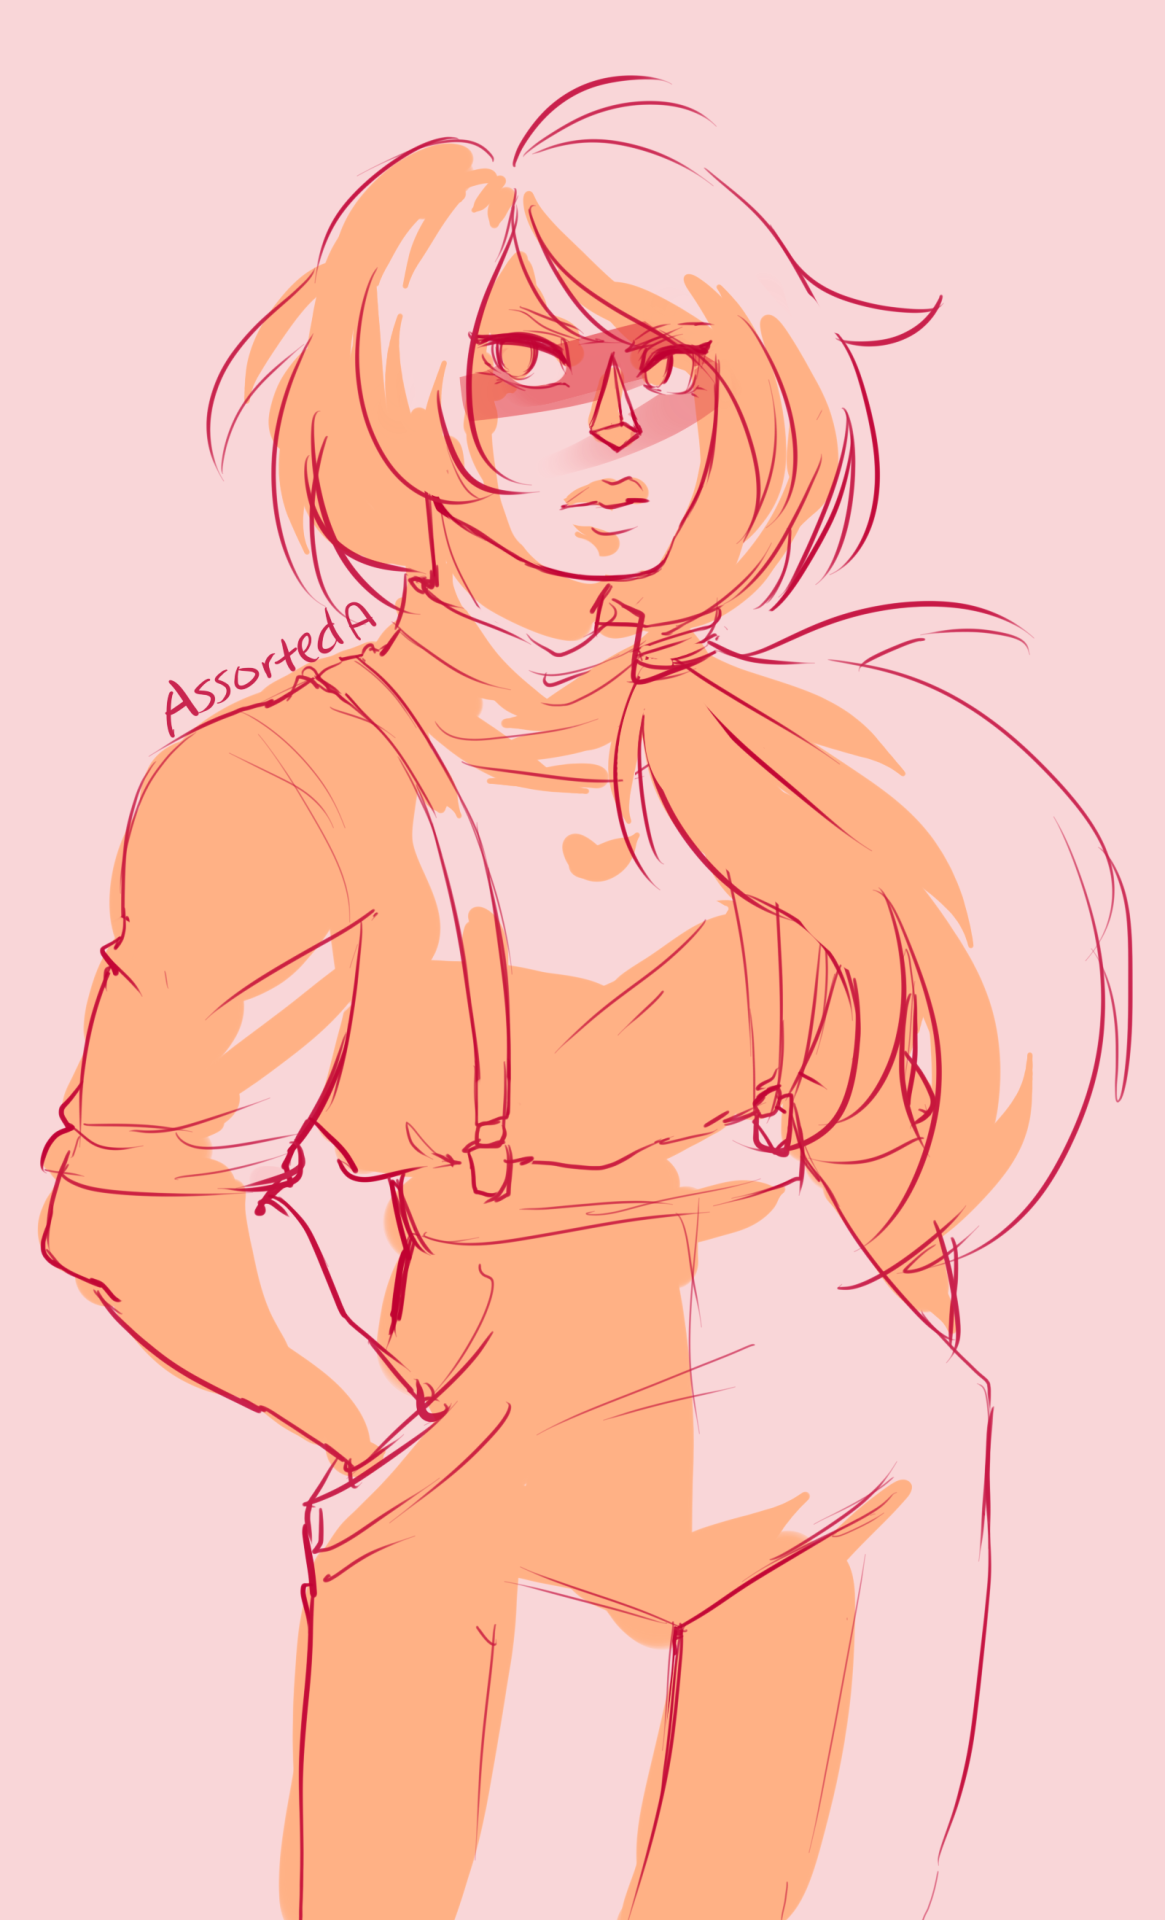 I just wanted to draw Jasper in a ponytail and suspenders.